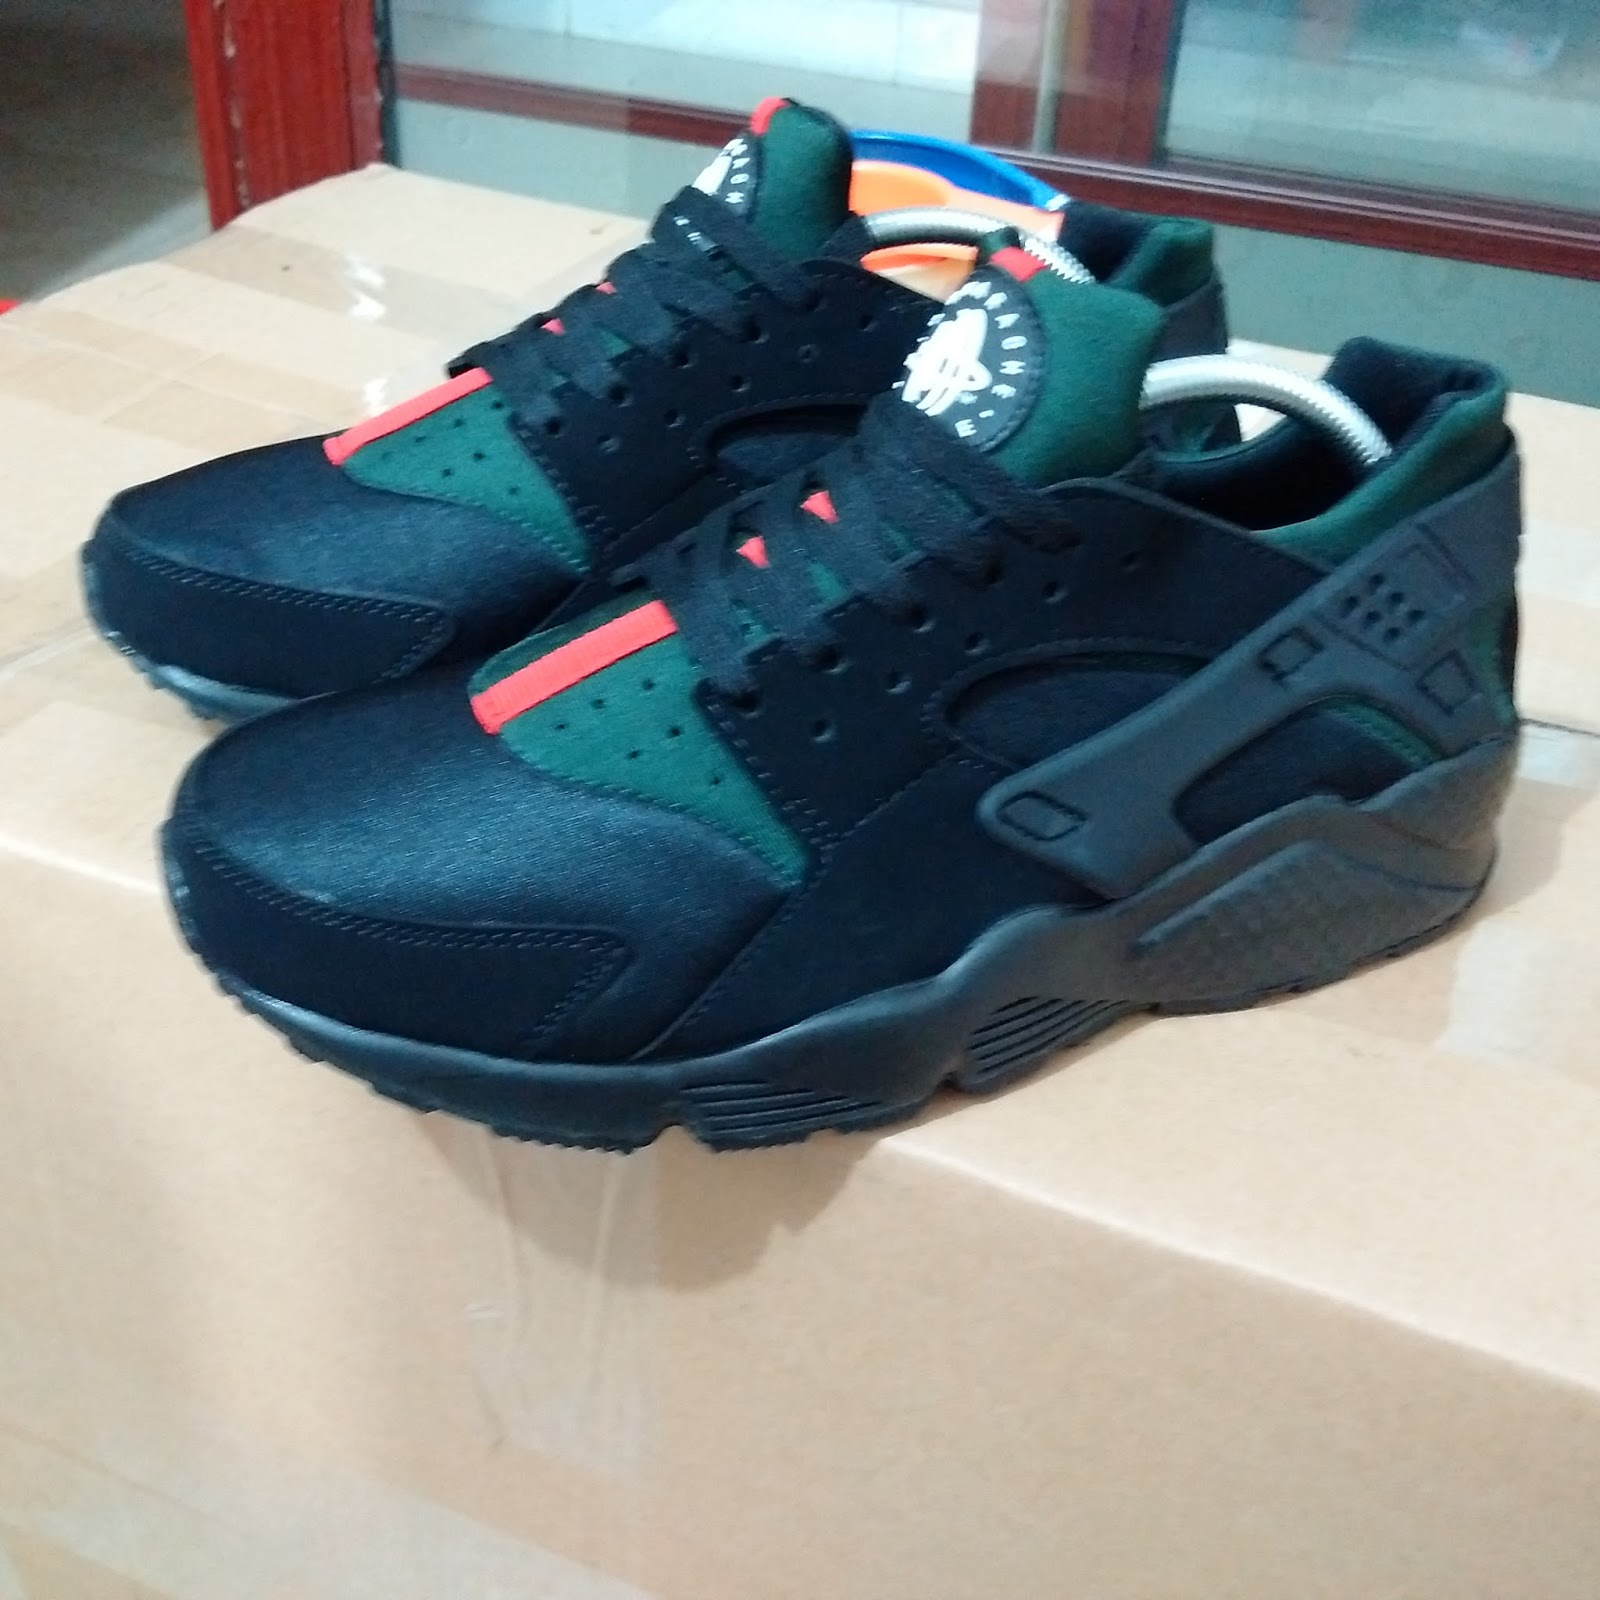 f30fec492945 GUCCI X NIKE AIR HUARACHE RELEASED!!! GUCCIRACHES TRIPPLE BLACK ...